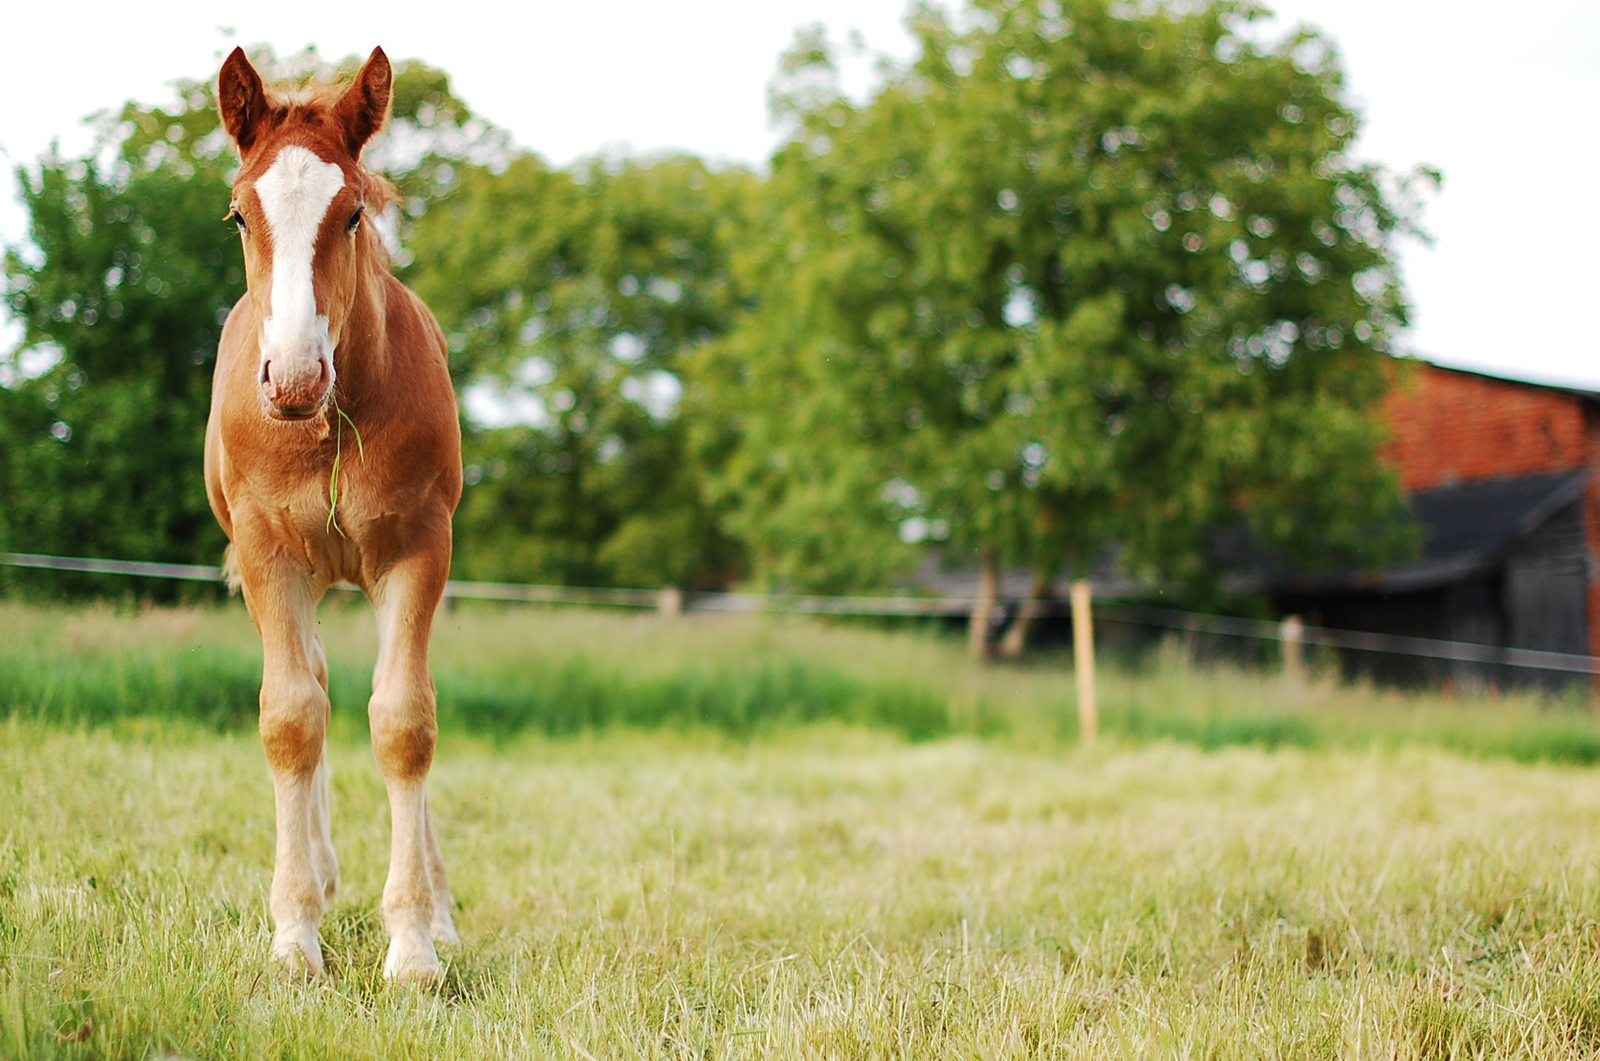 A foal standing in a field eating grass